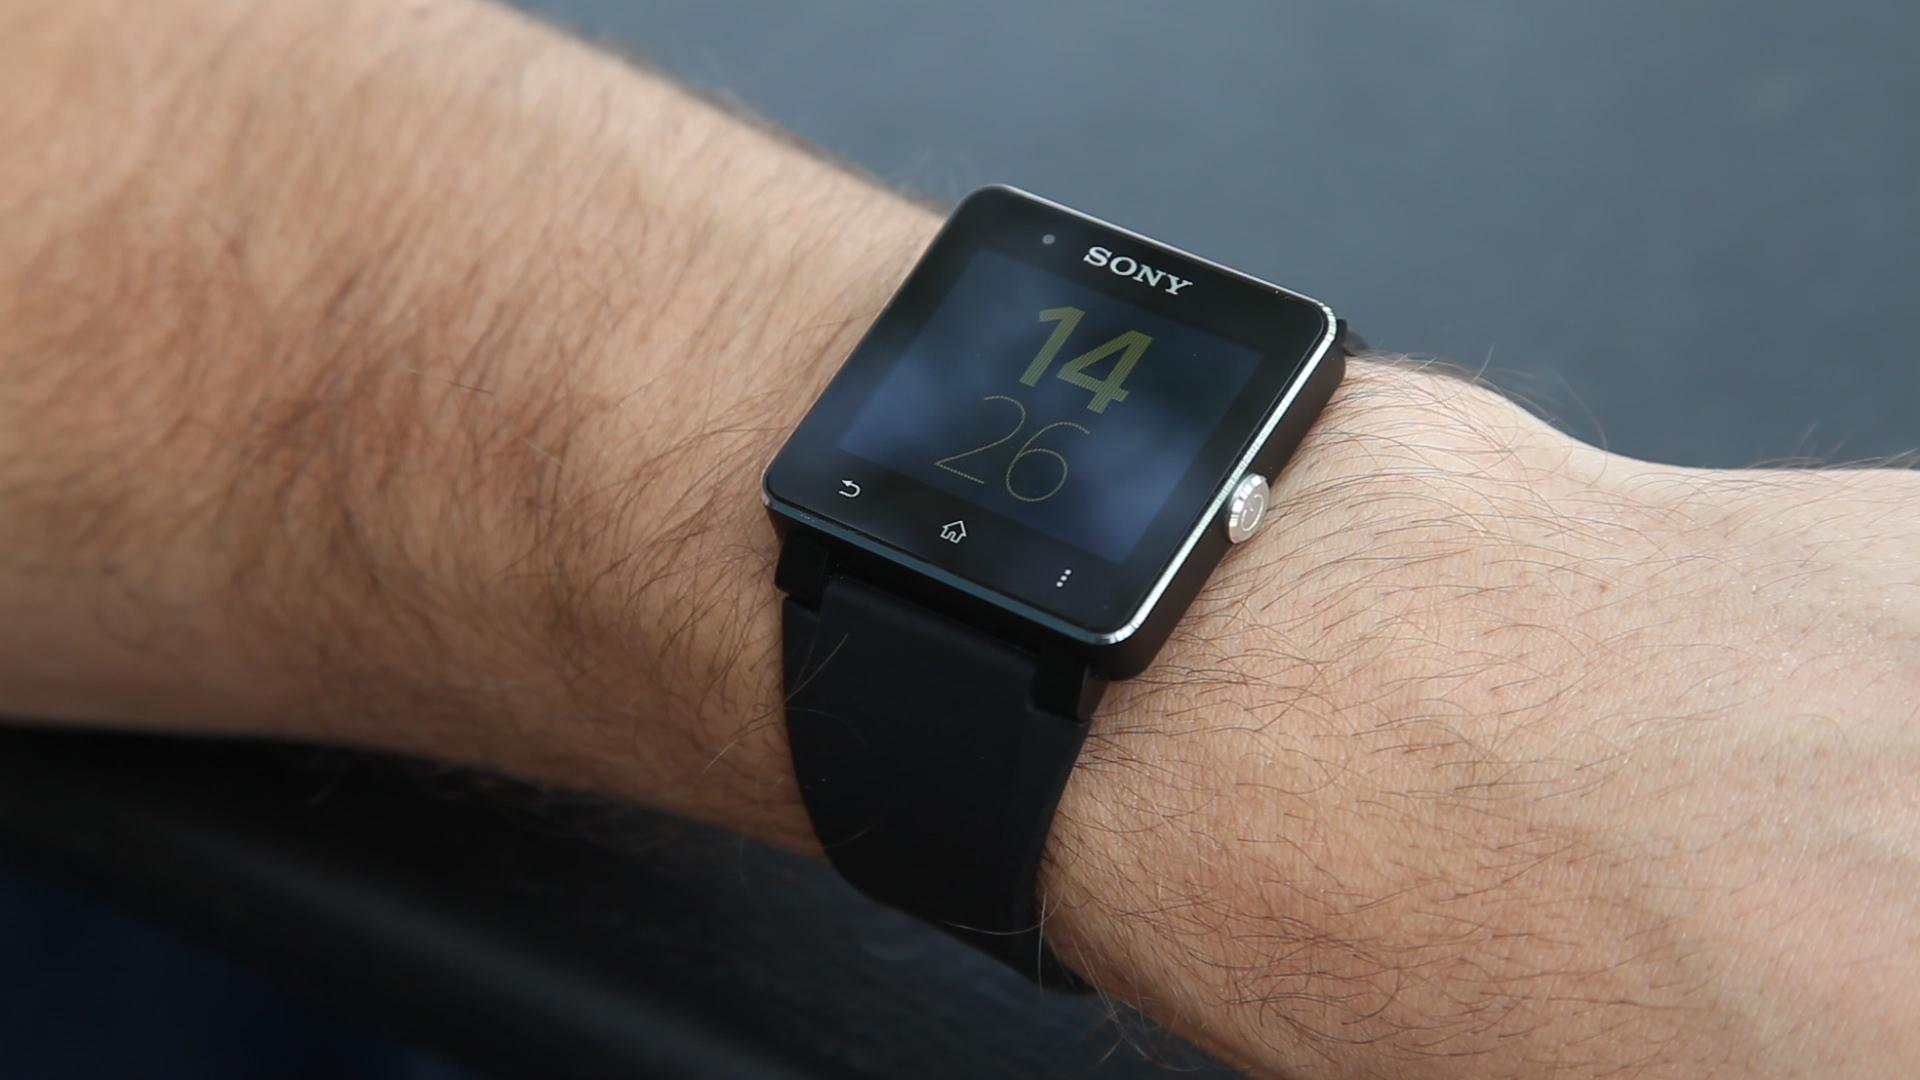 Sony Smartwatch2 Design